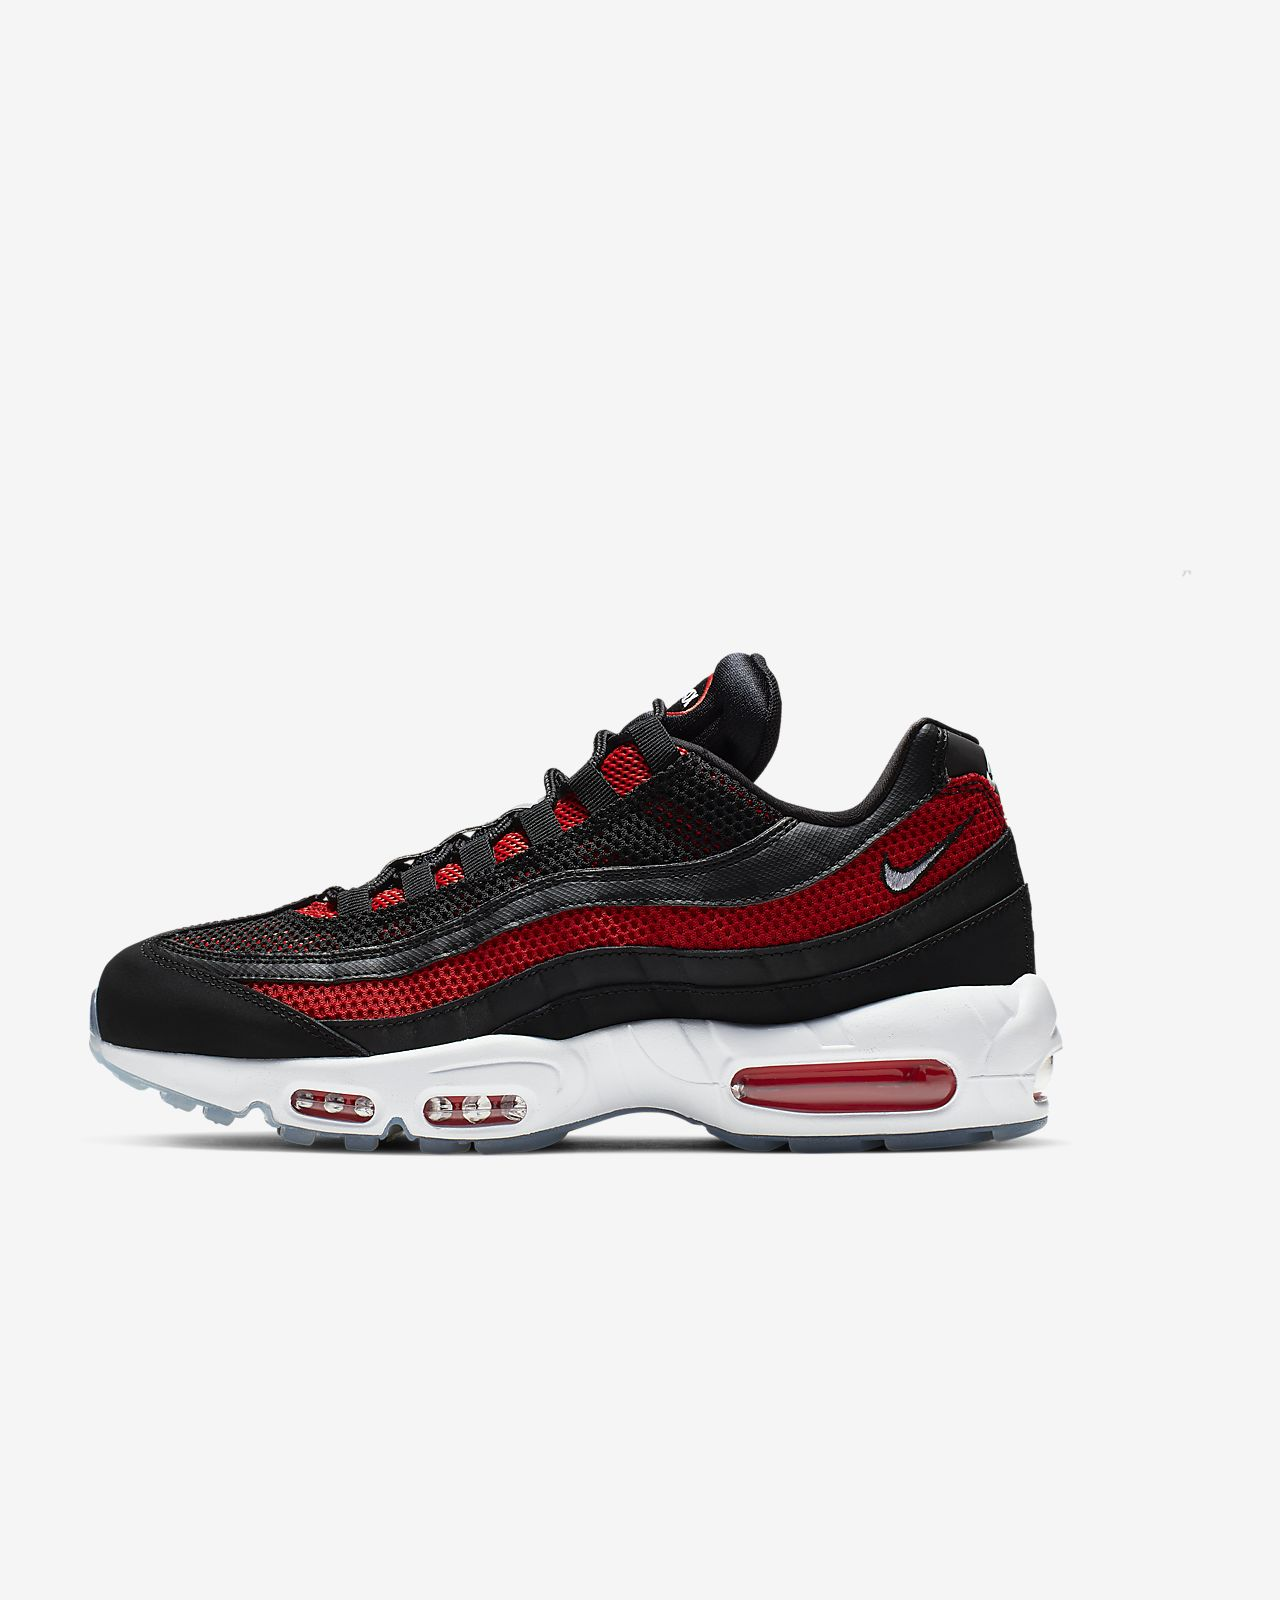 online retailer 57f12 ba0dd ... Nike Air Max 95 Essential Men s Shoe